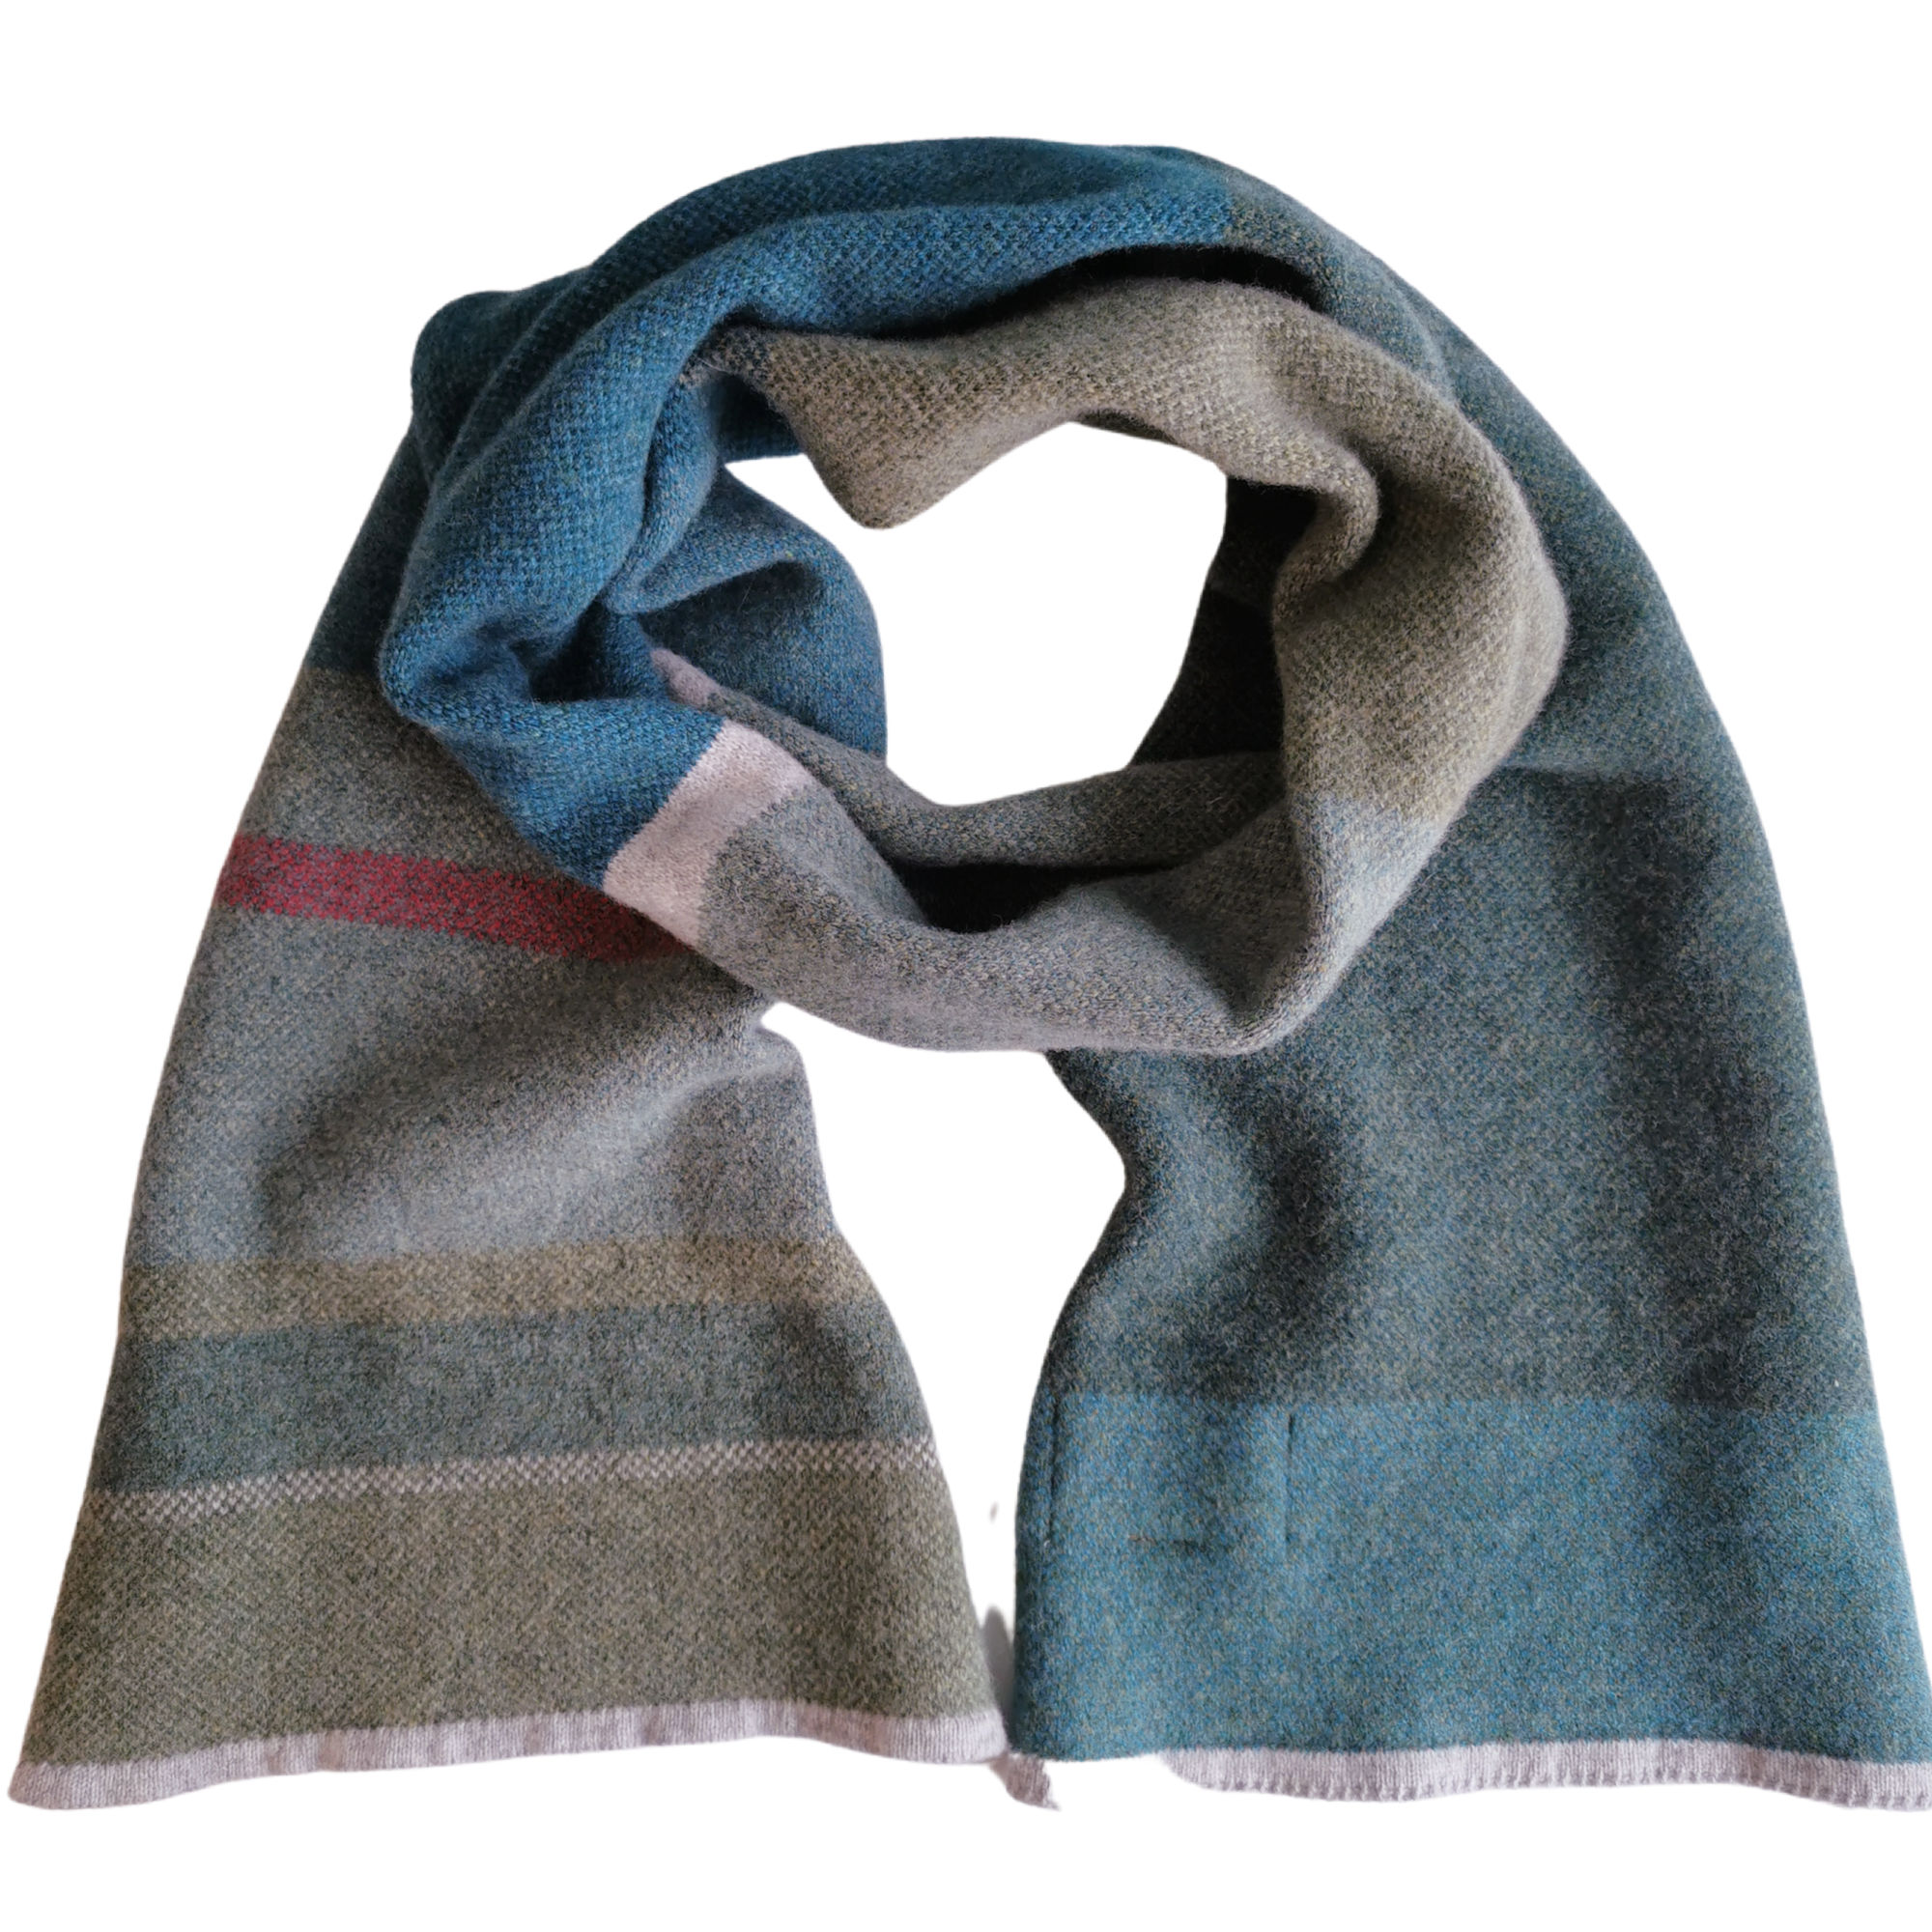 Highland Lambswool Scarf by Louise Wedderburn